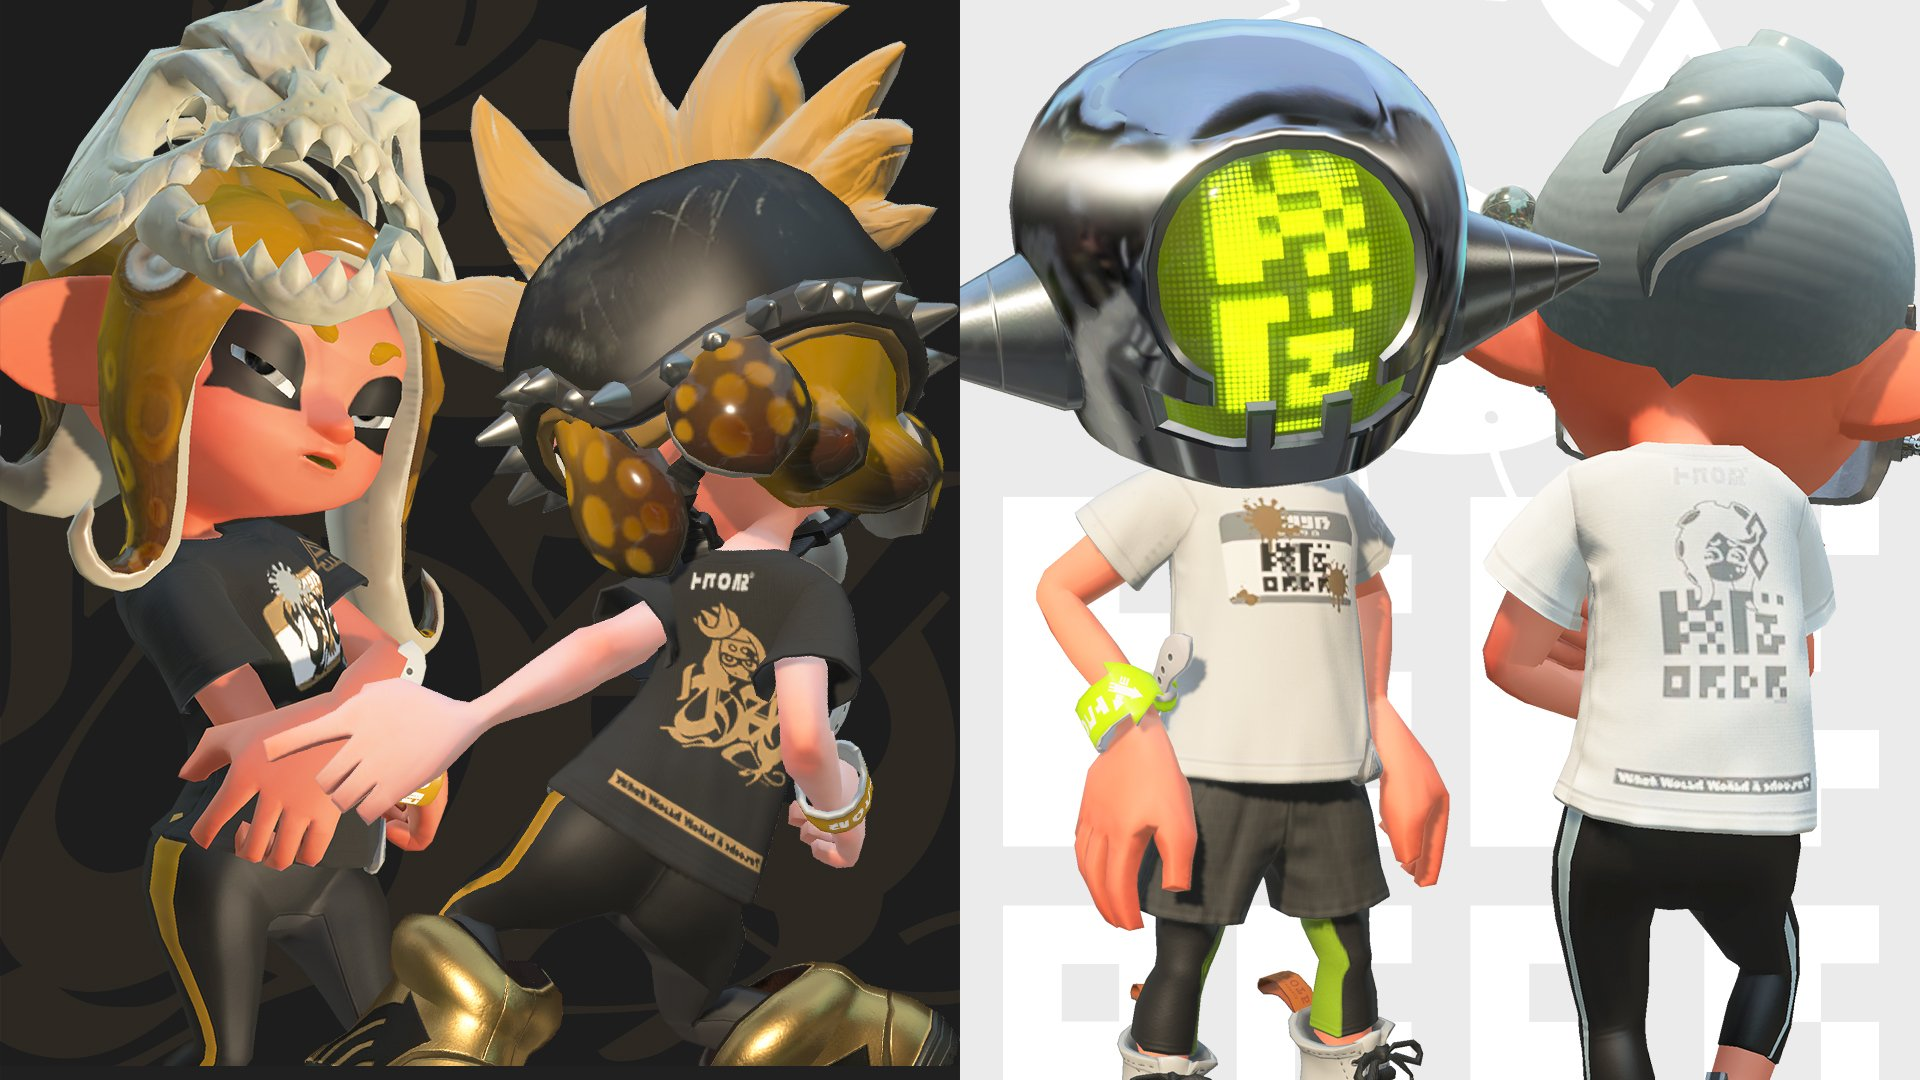 Splatoon 2 Splatfest Splatocalypse Gear Screenshot 2